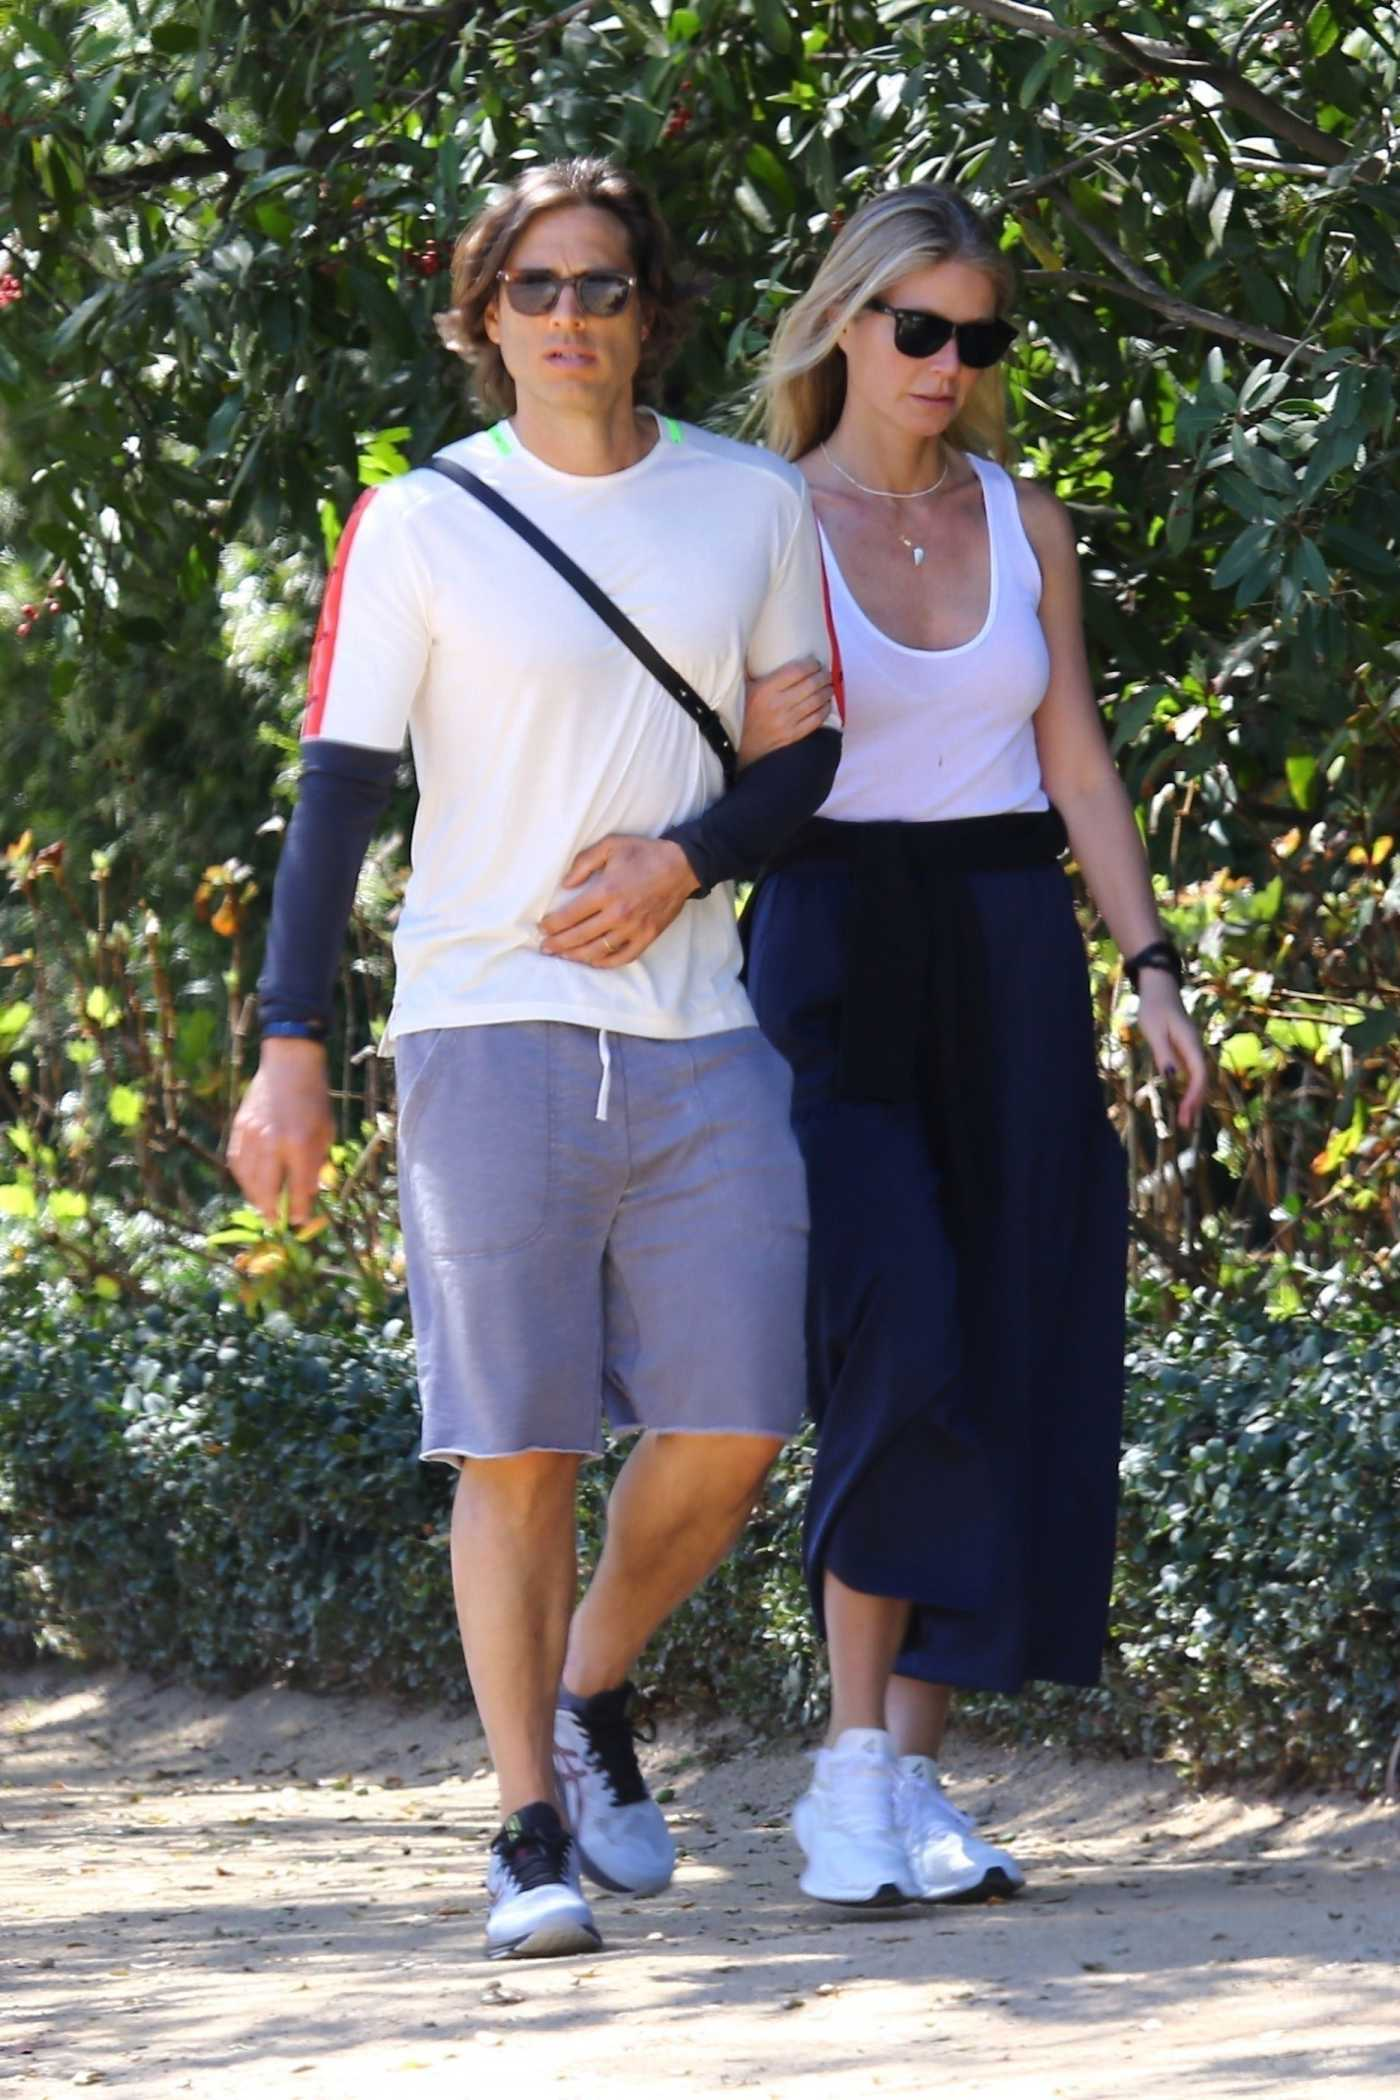 Gwyneth Paltrow in a White Tank Top Was Seen Out with Brad Falchuk in Los Angeles 03/08/2020